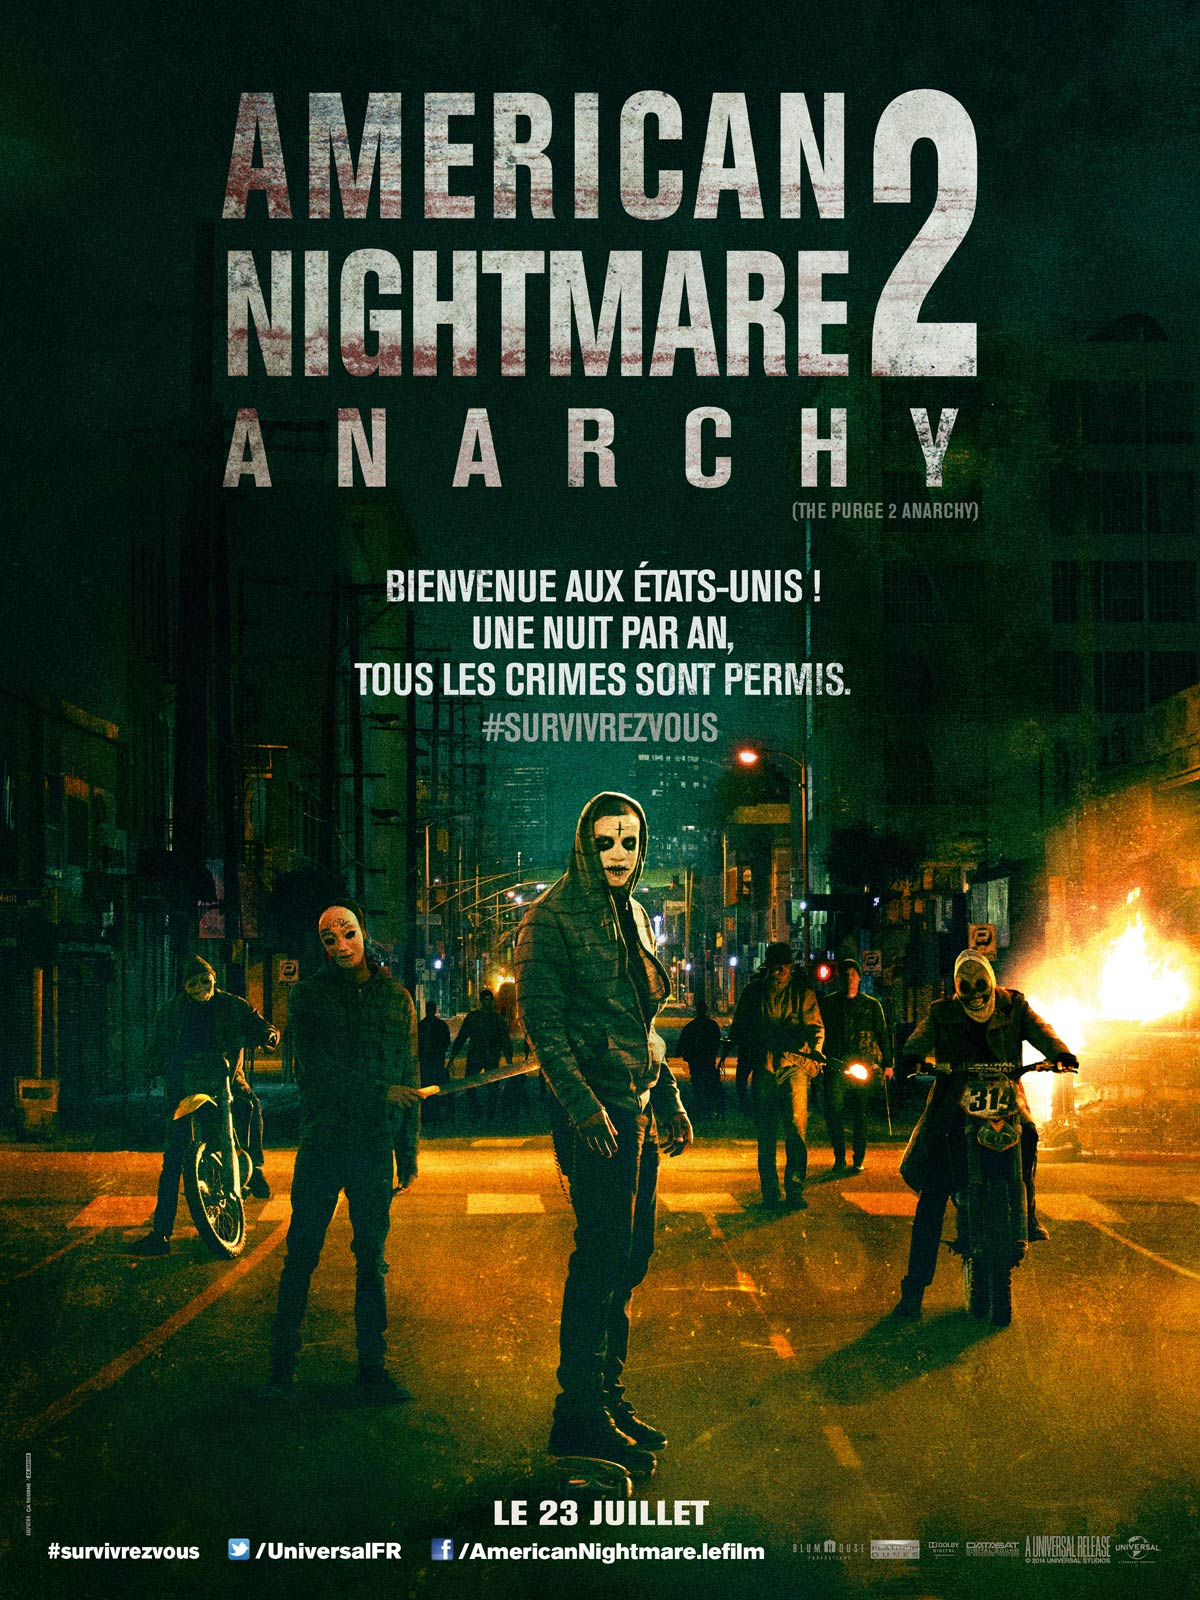 American-Nightmare-2-Anarchie-Affiche-France